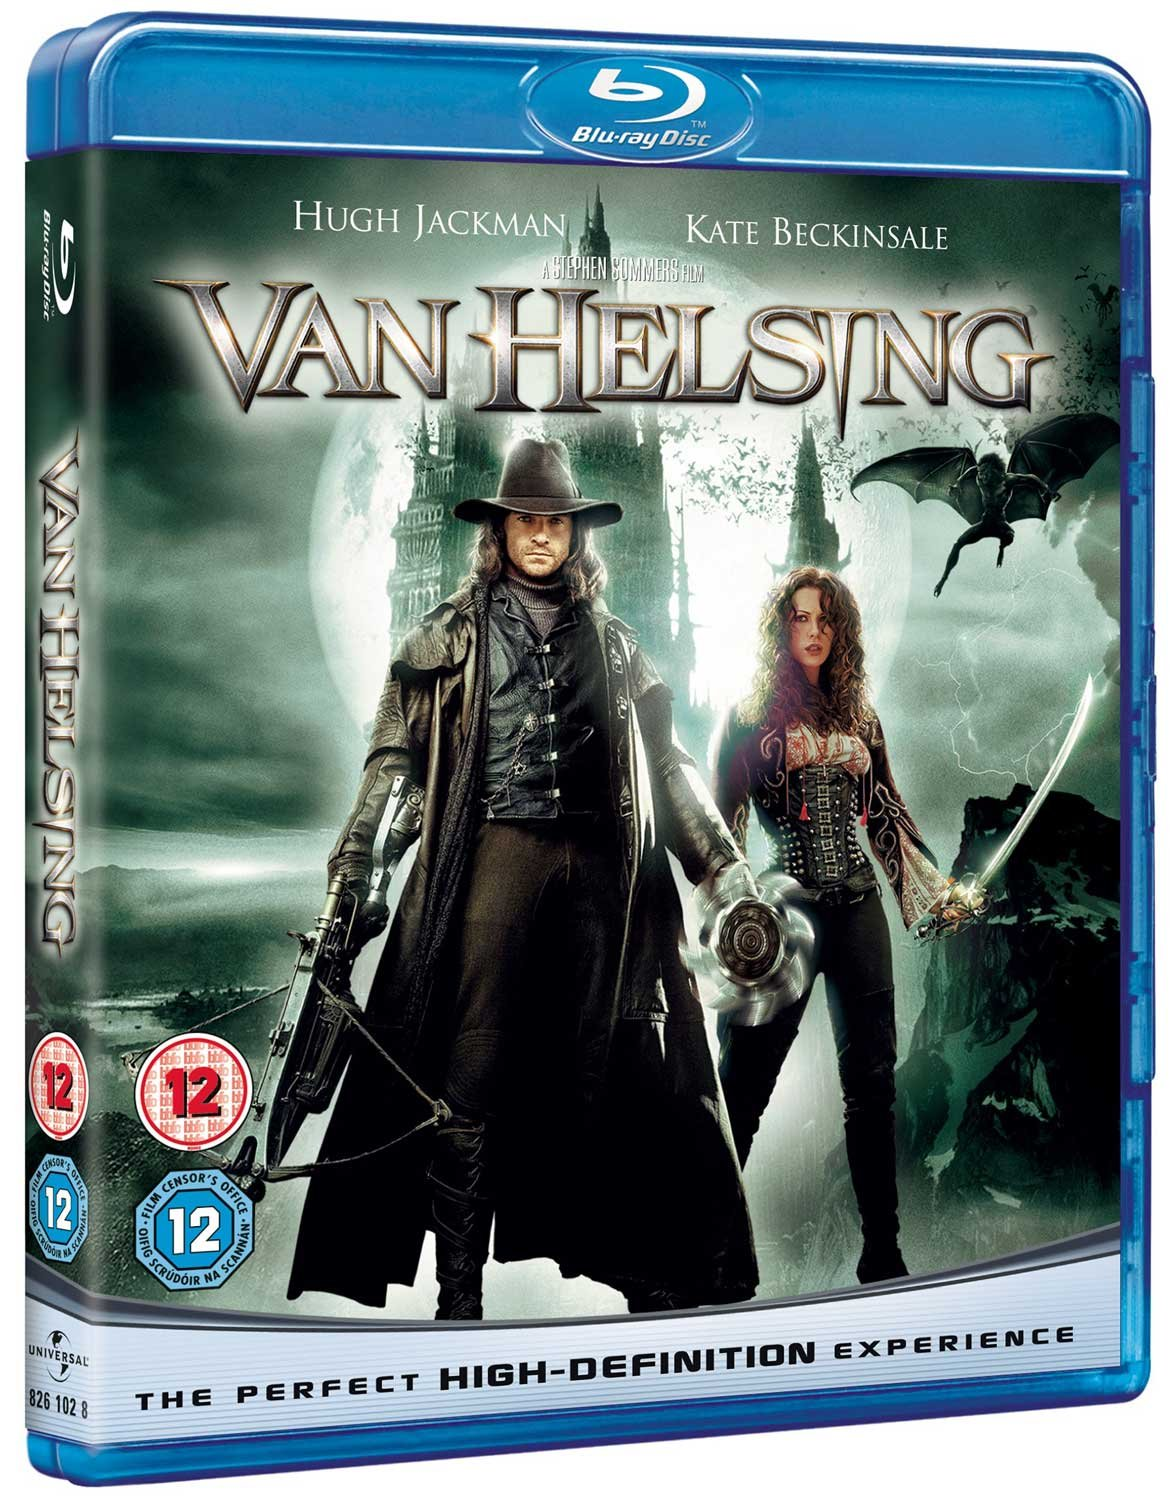 Van Helsing 2004 BluRay 720p 1.2GB [Telugu-Tamil-Hindi-Eng] MKV